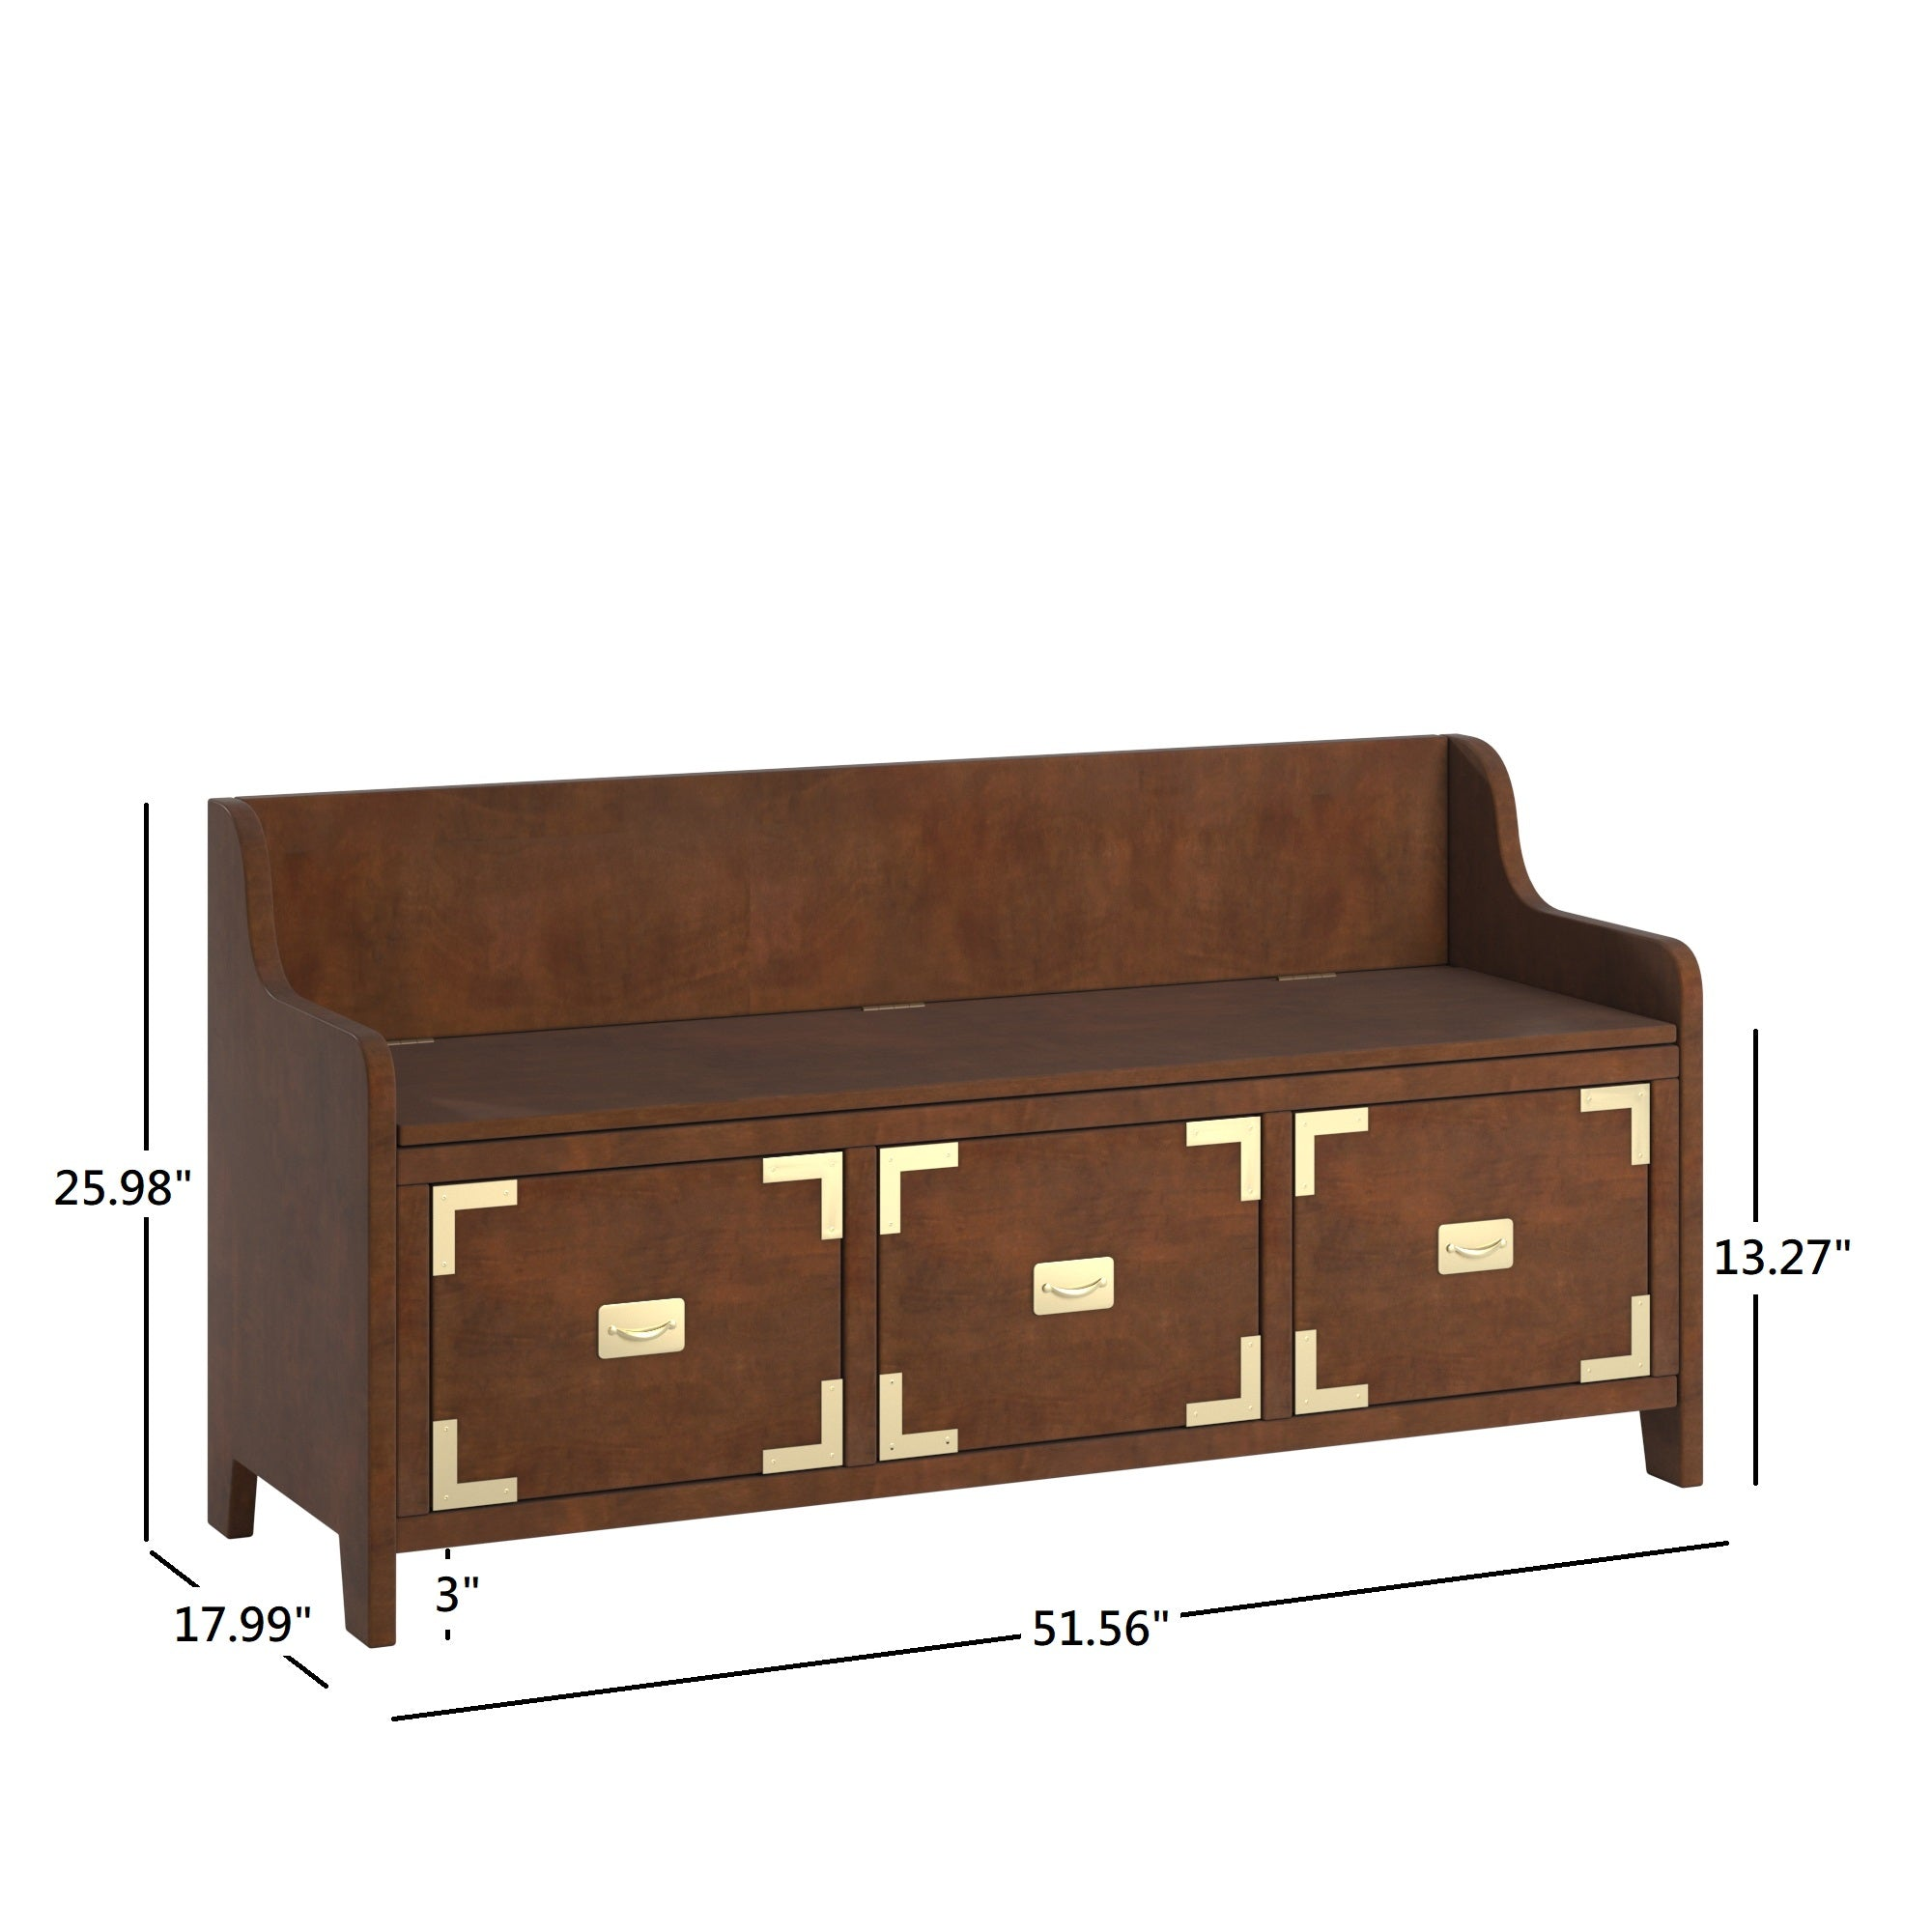 "52"" Lift Top Storage Bench - Black"